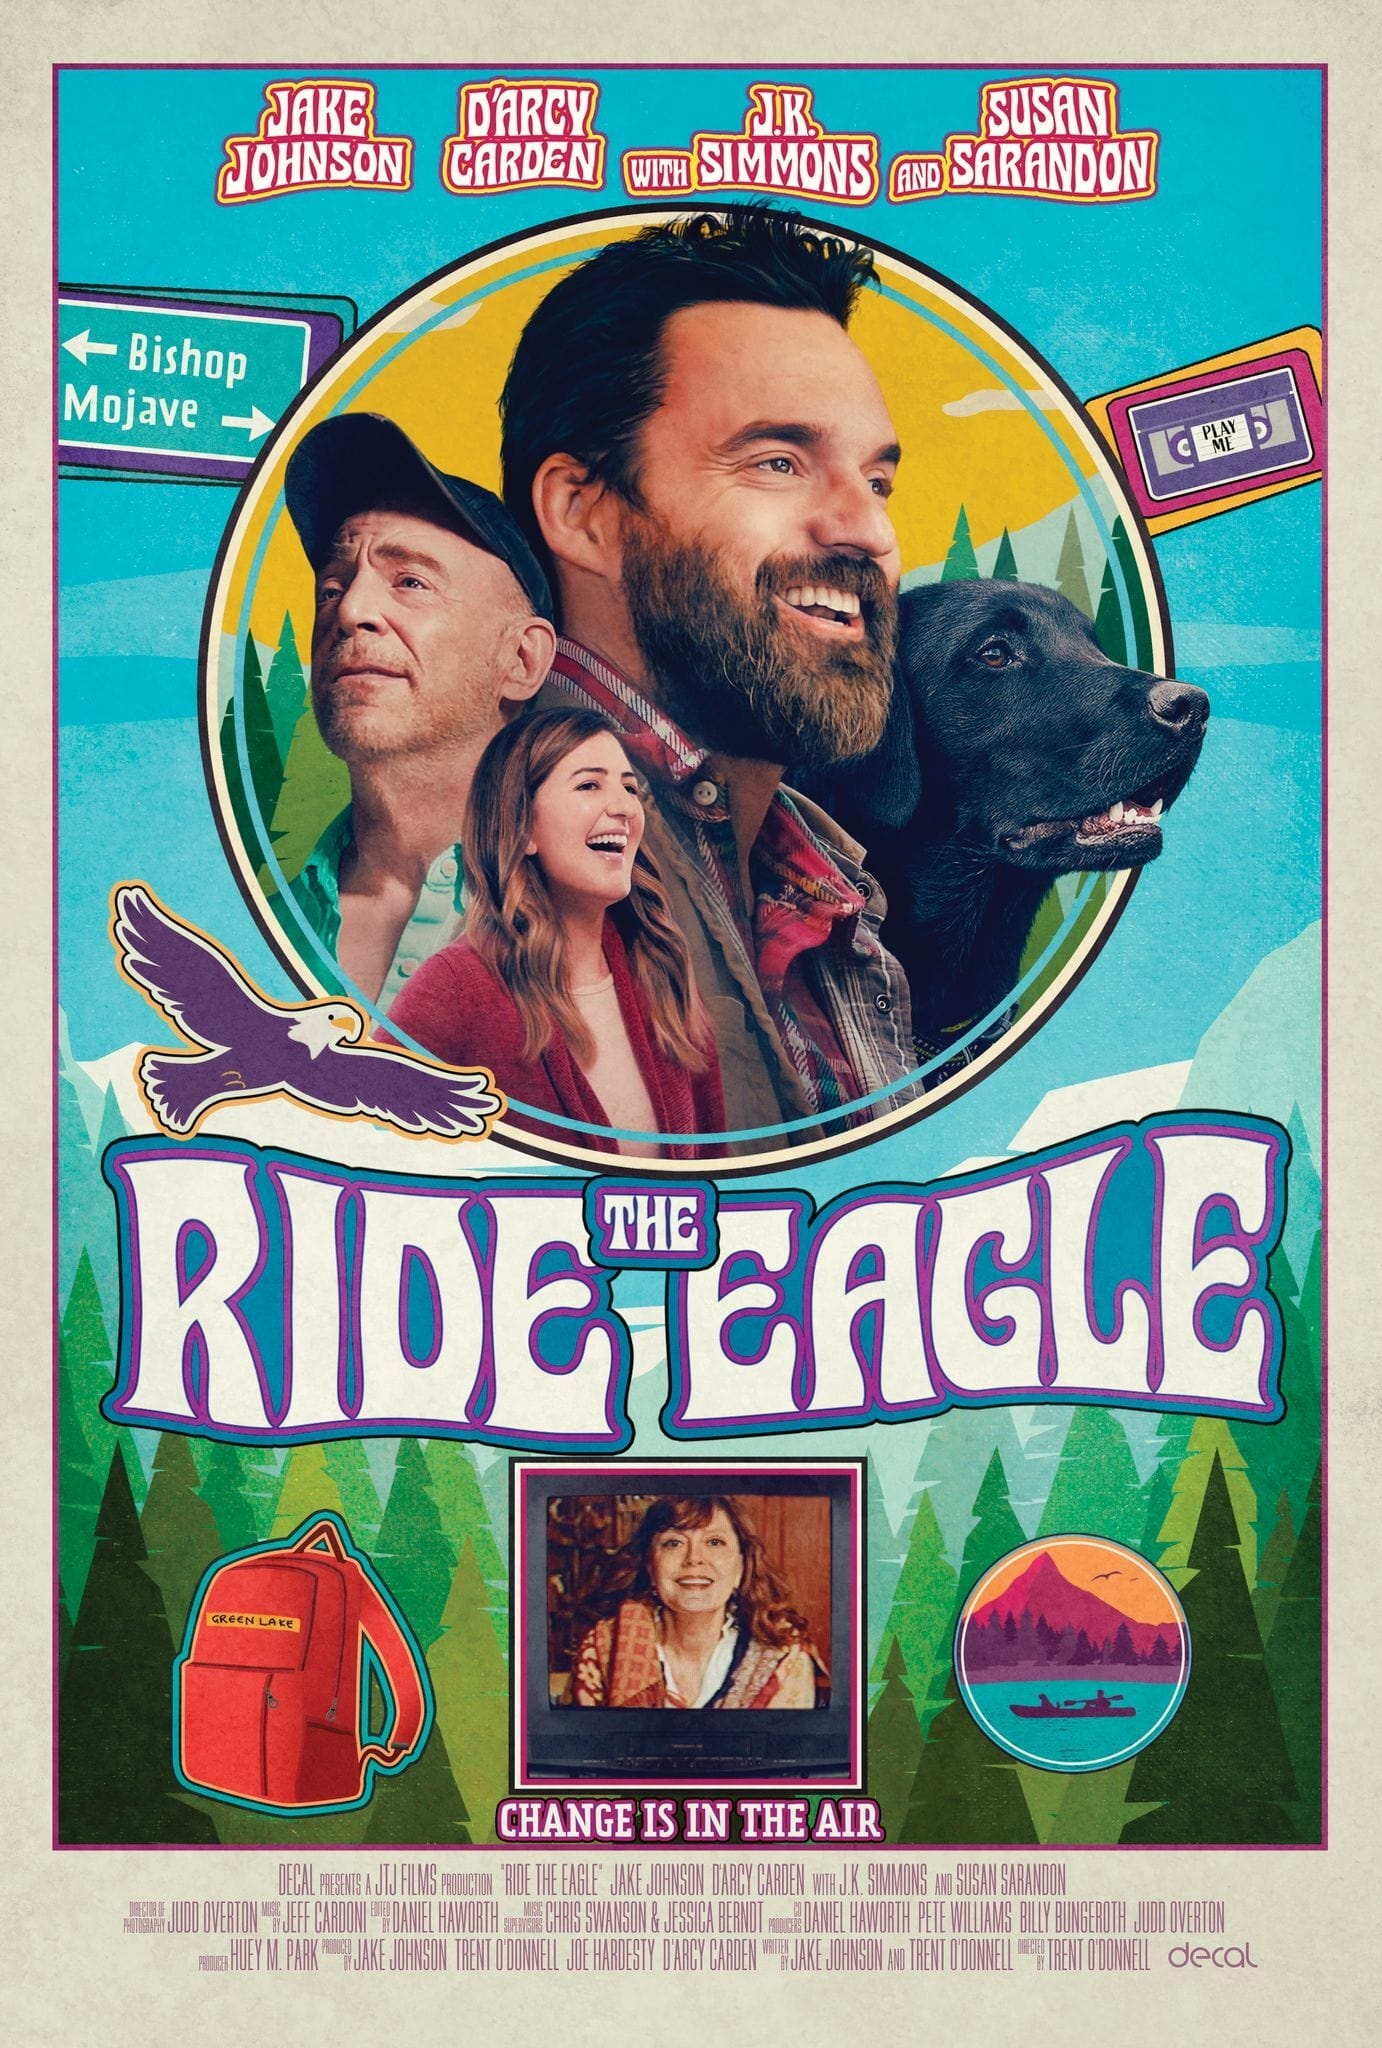 Poster for Ride the Eagle